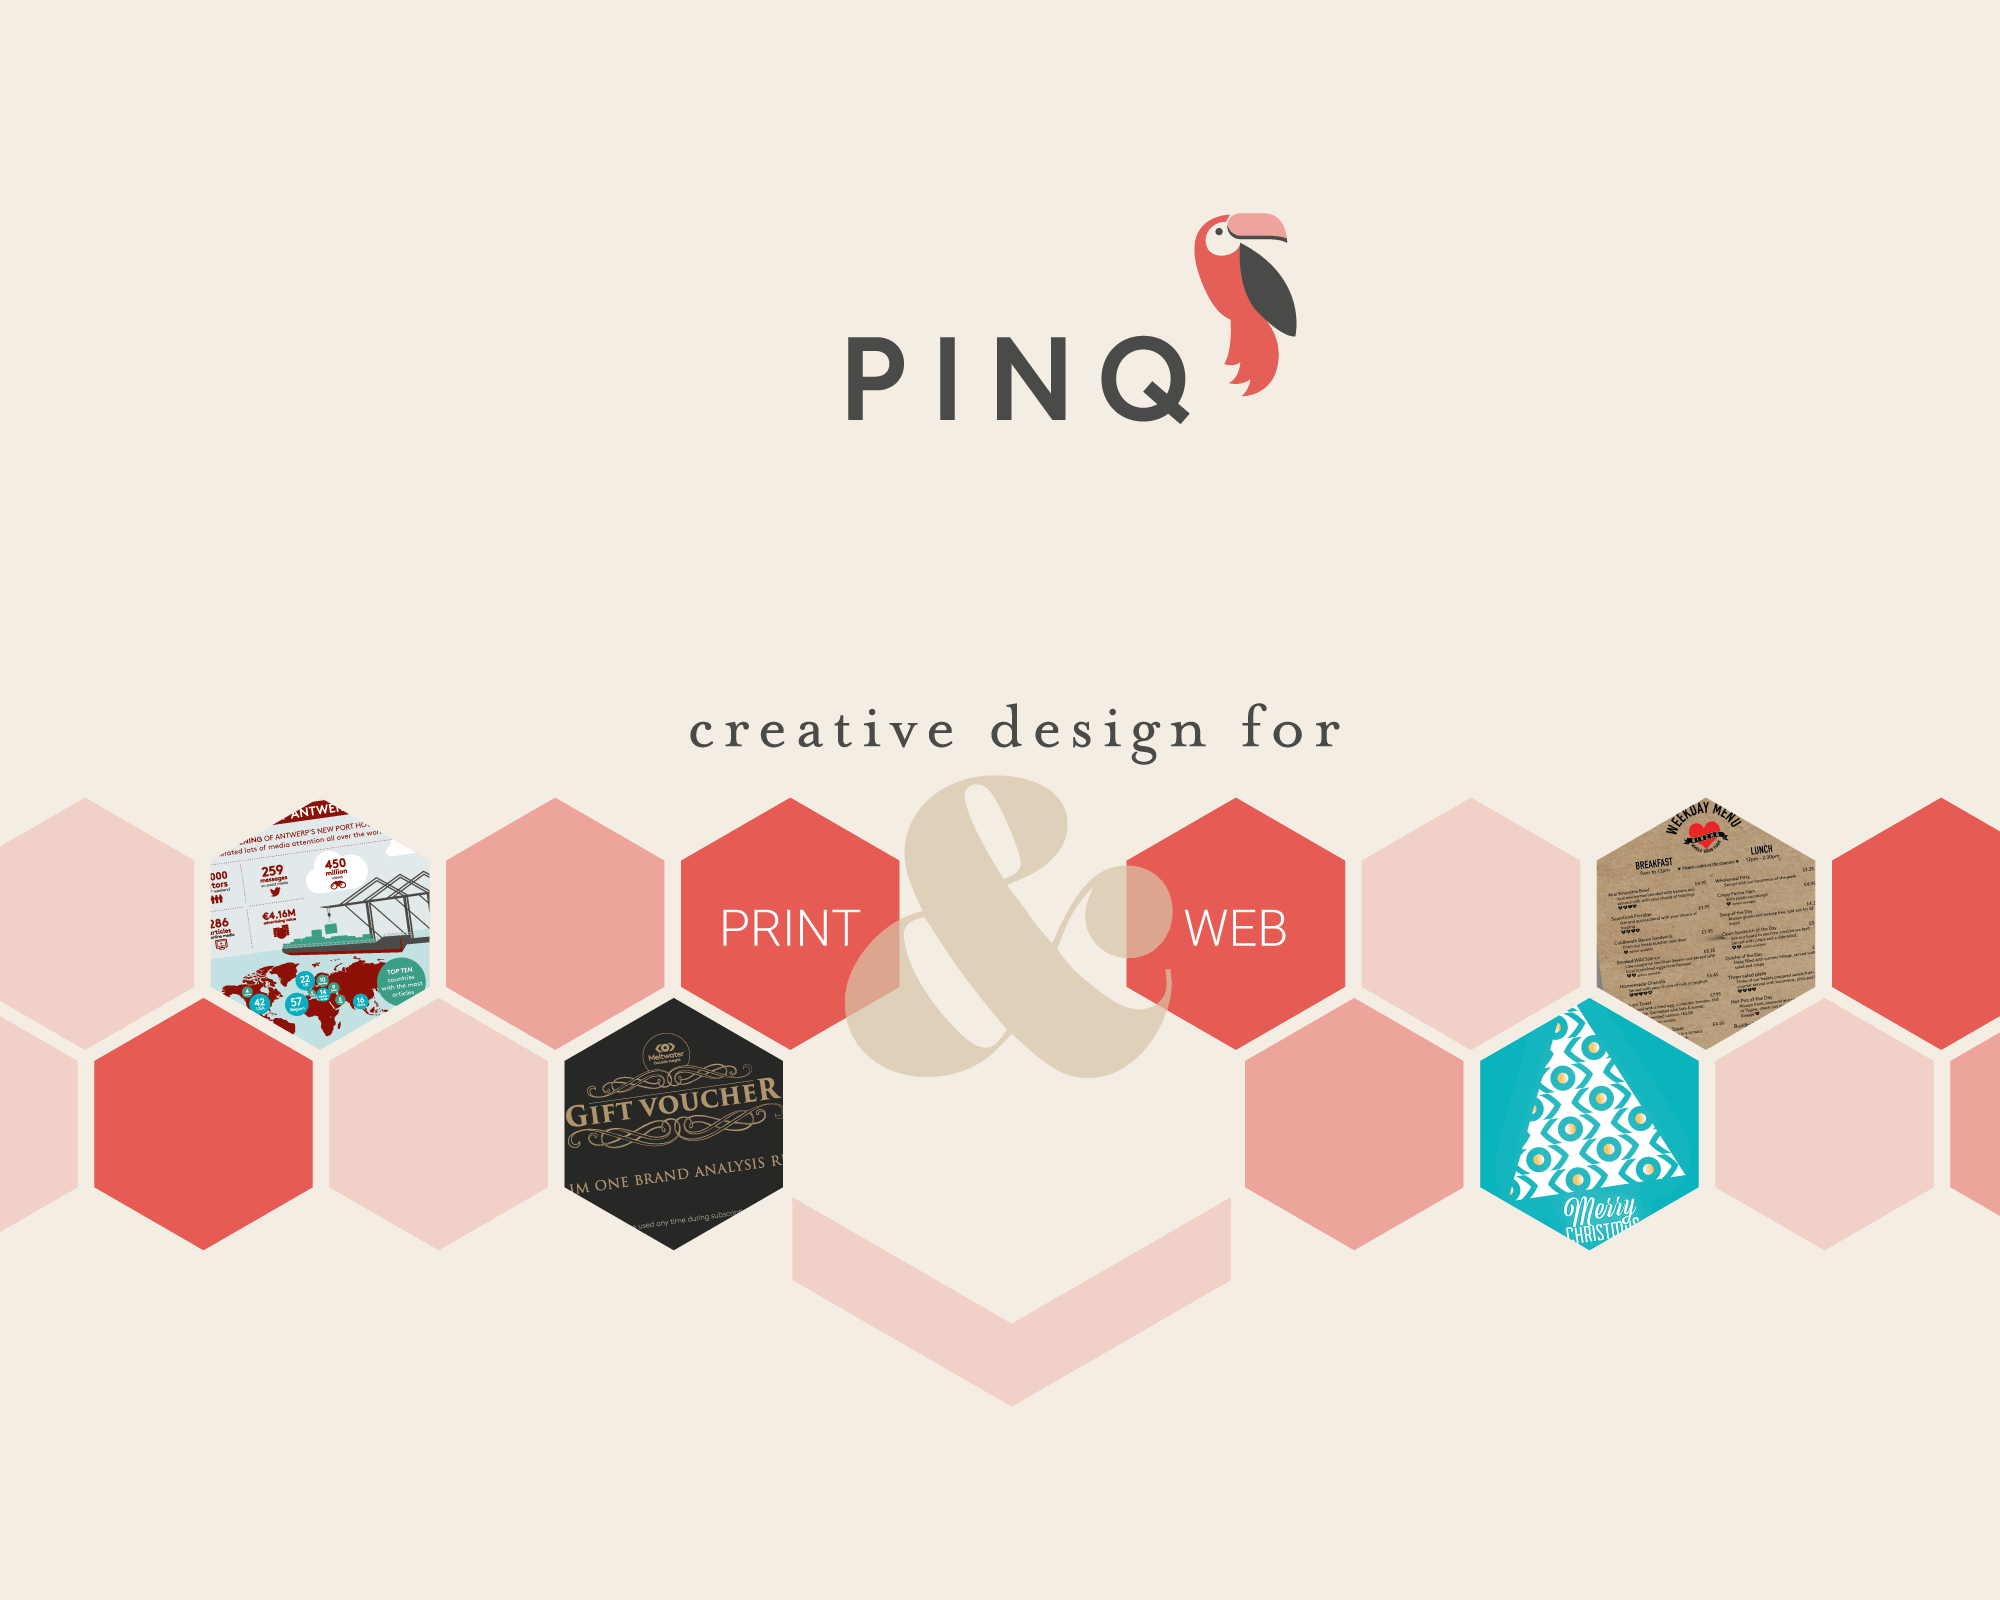 pinq creative design for print and web